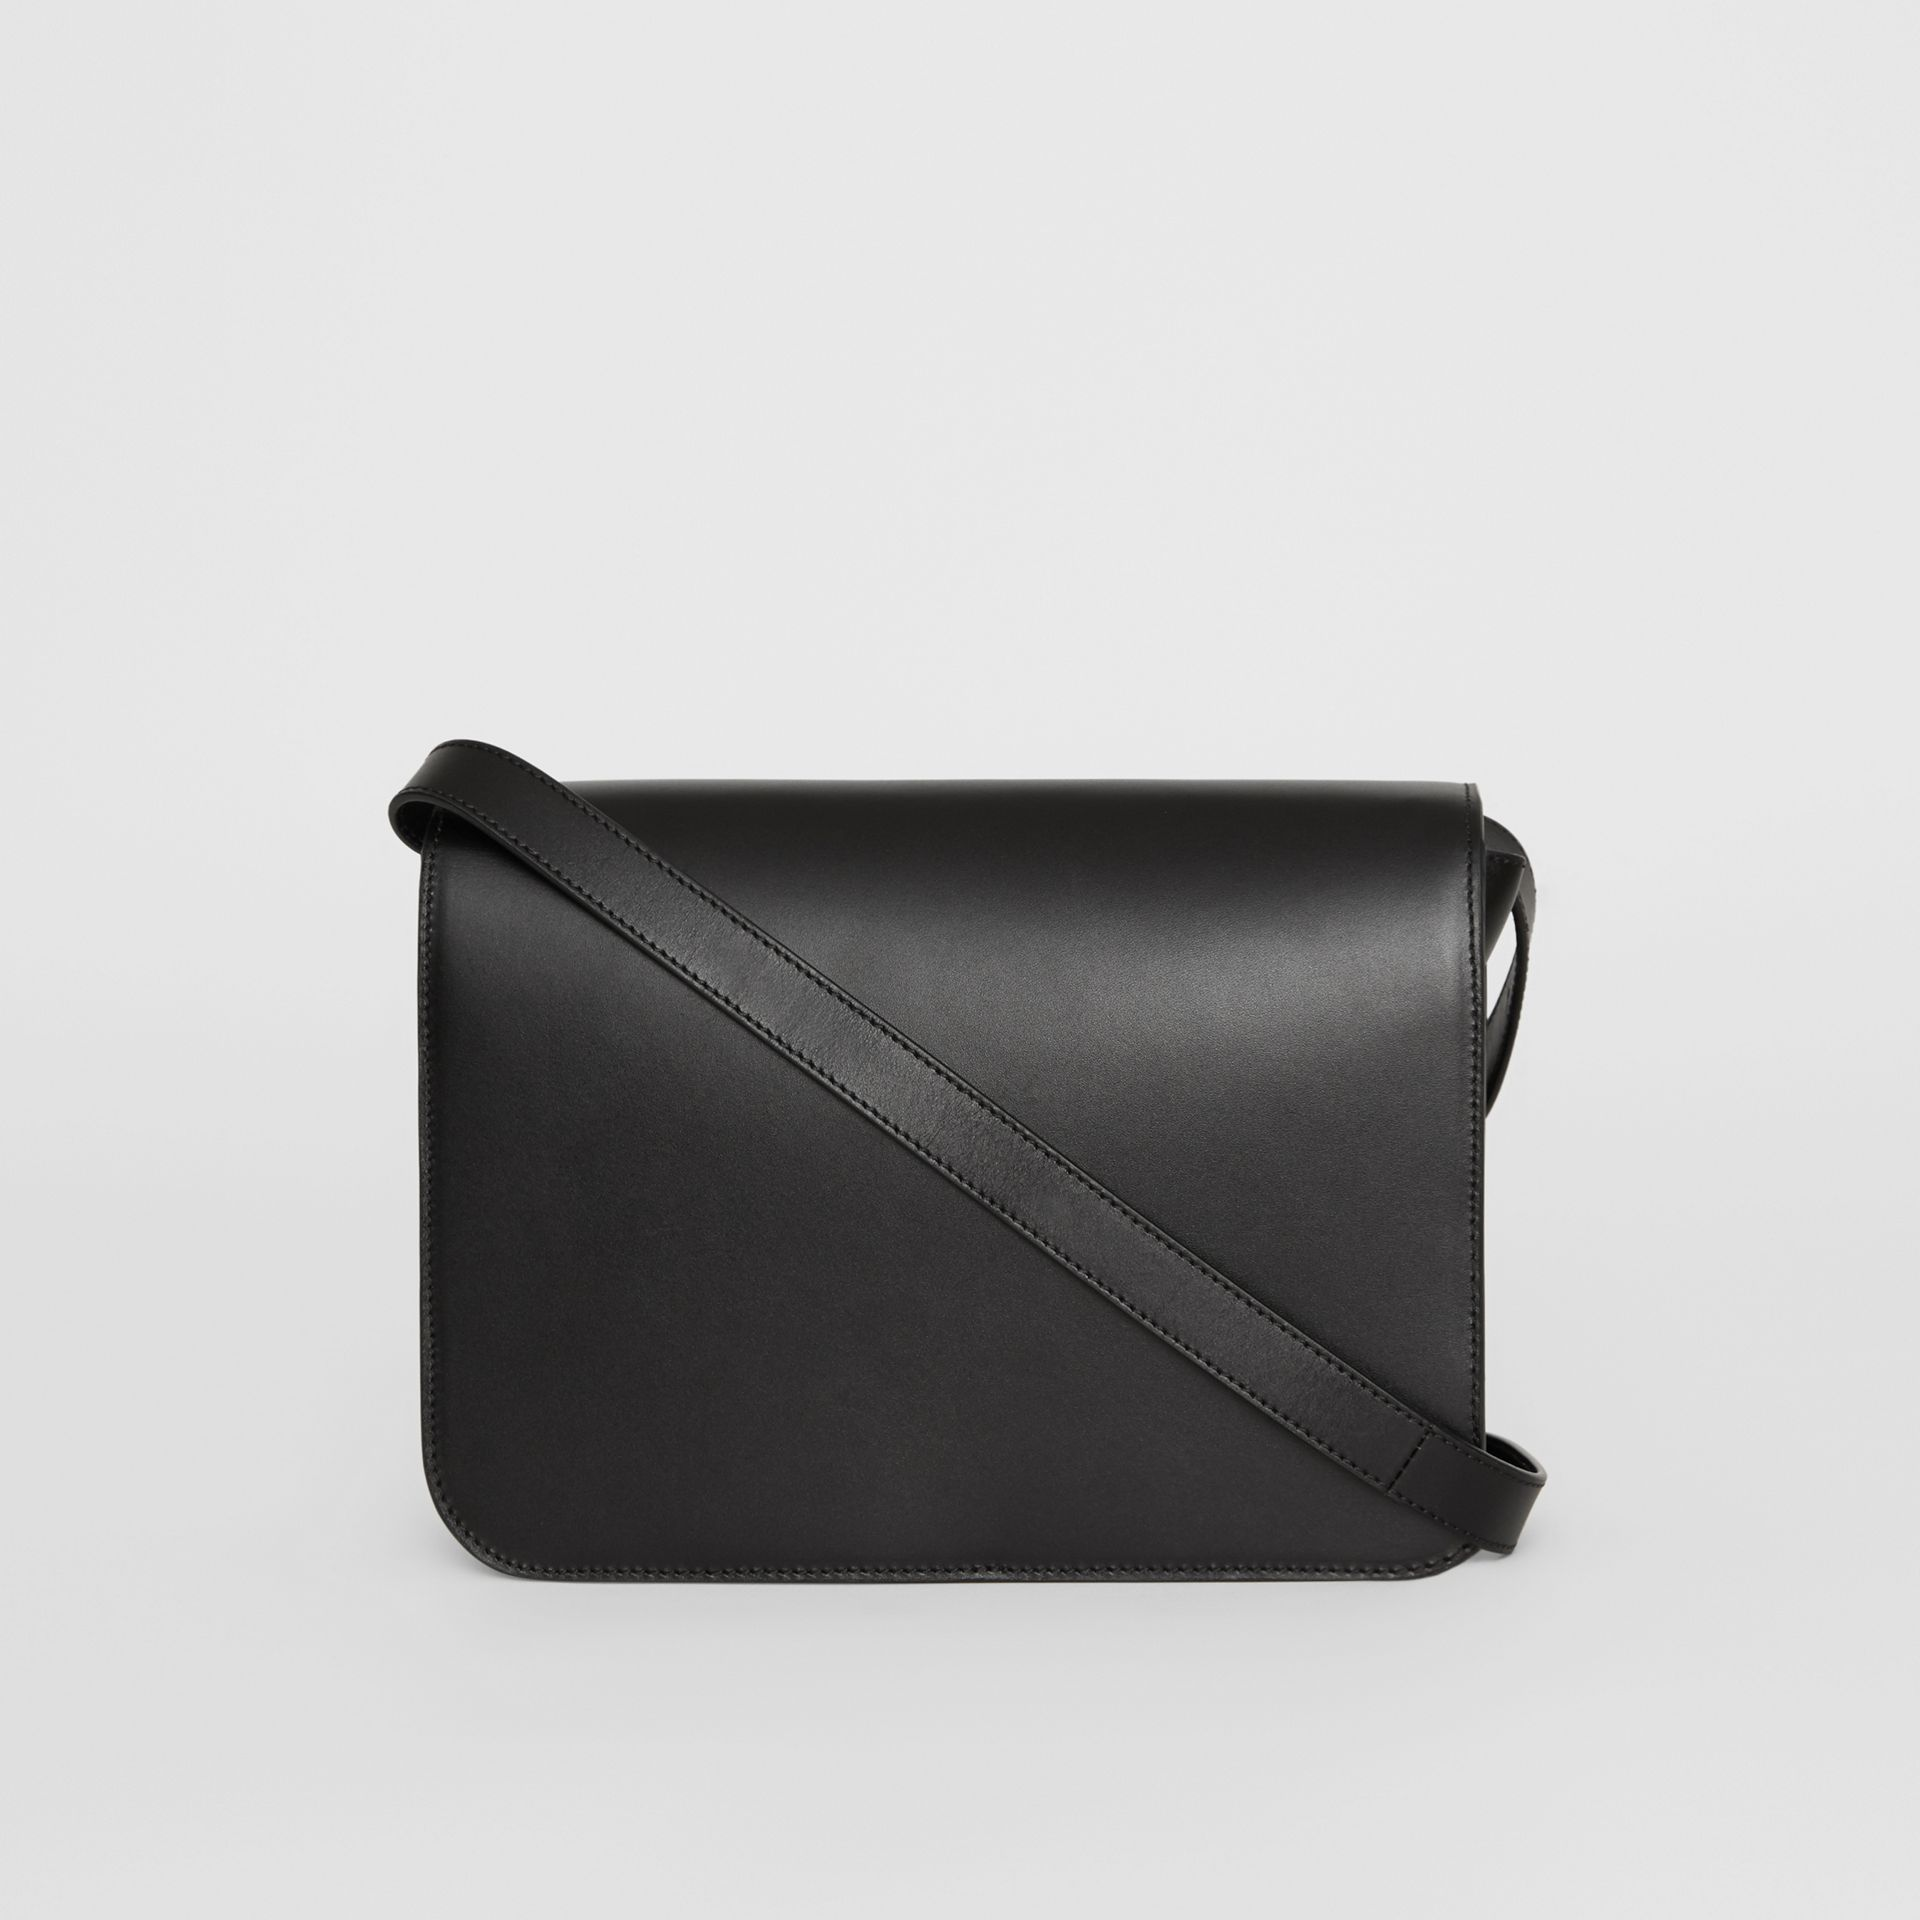 Medium Leather TB Bag in Black - Women | Burberry Canada - gallery image 7